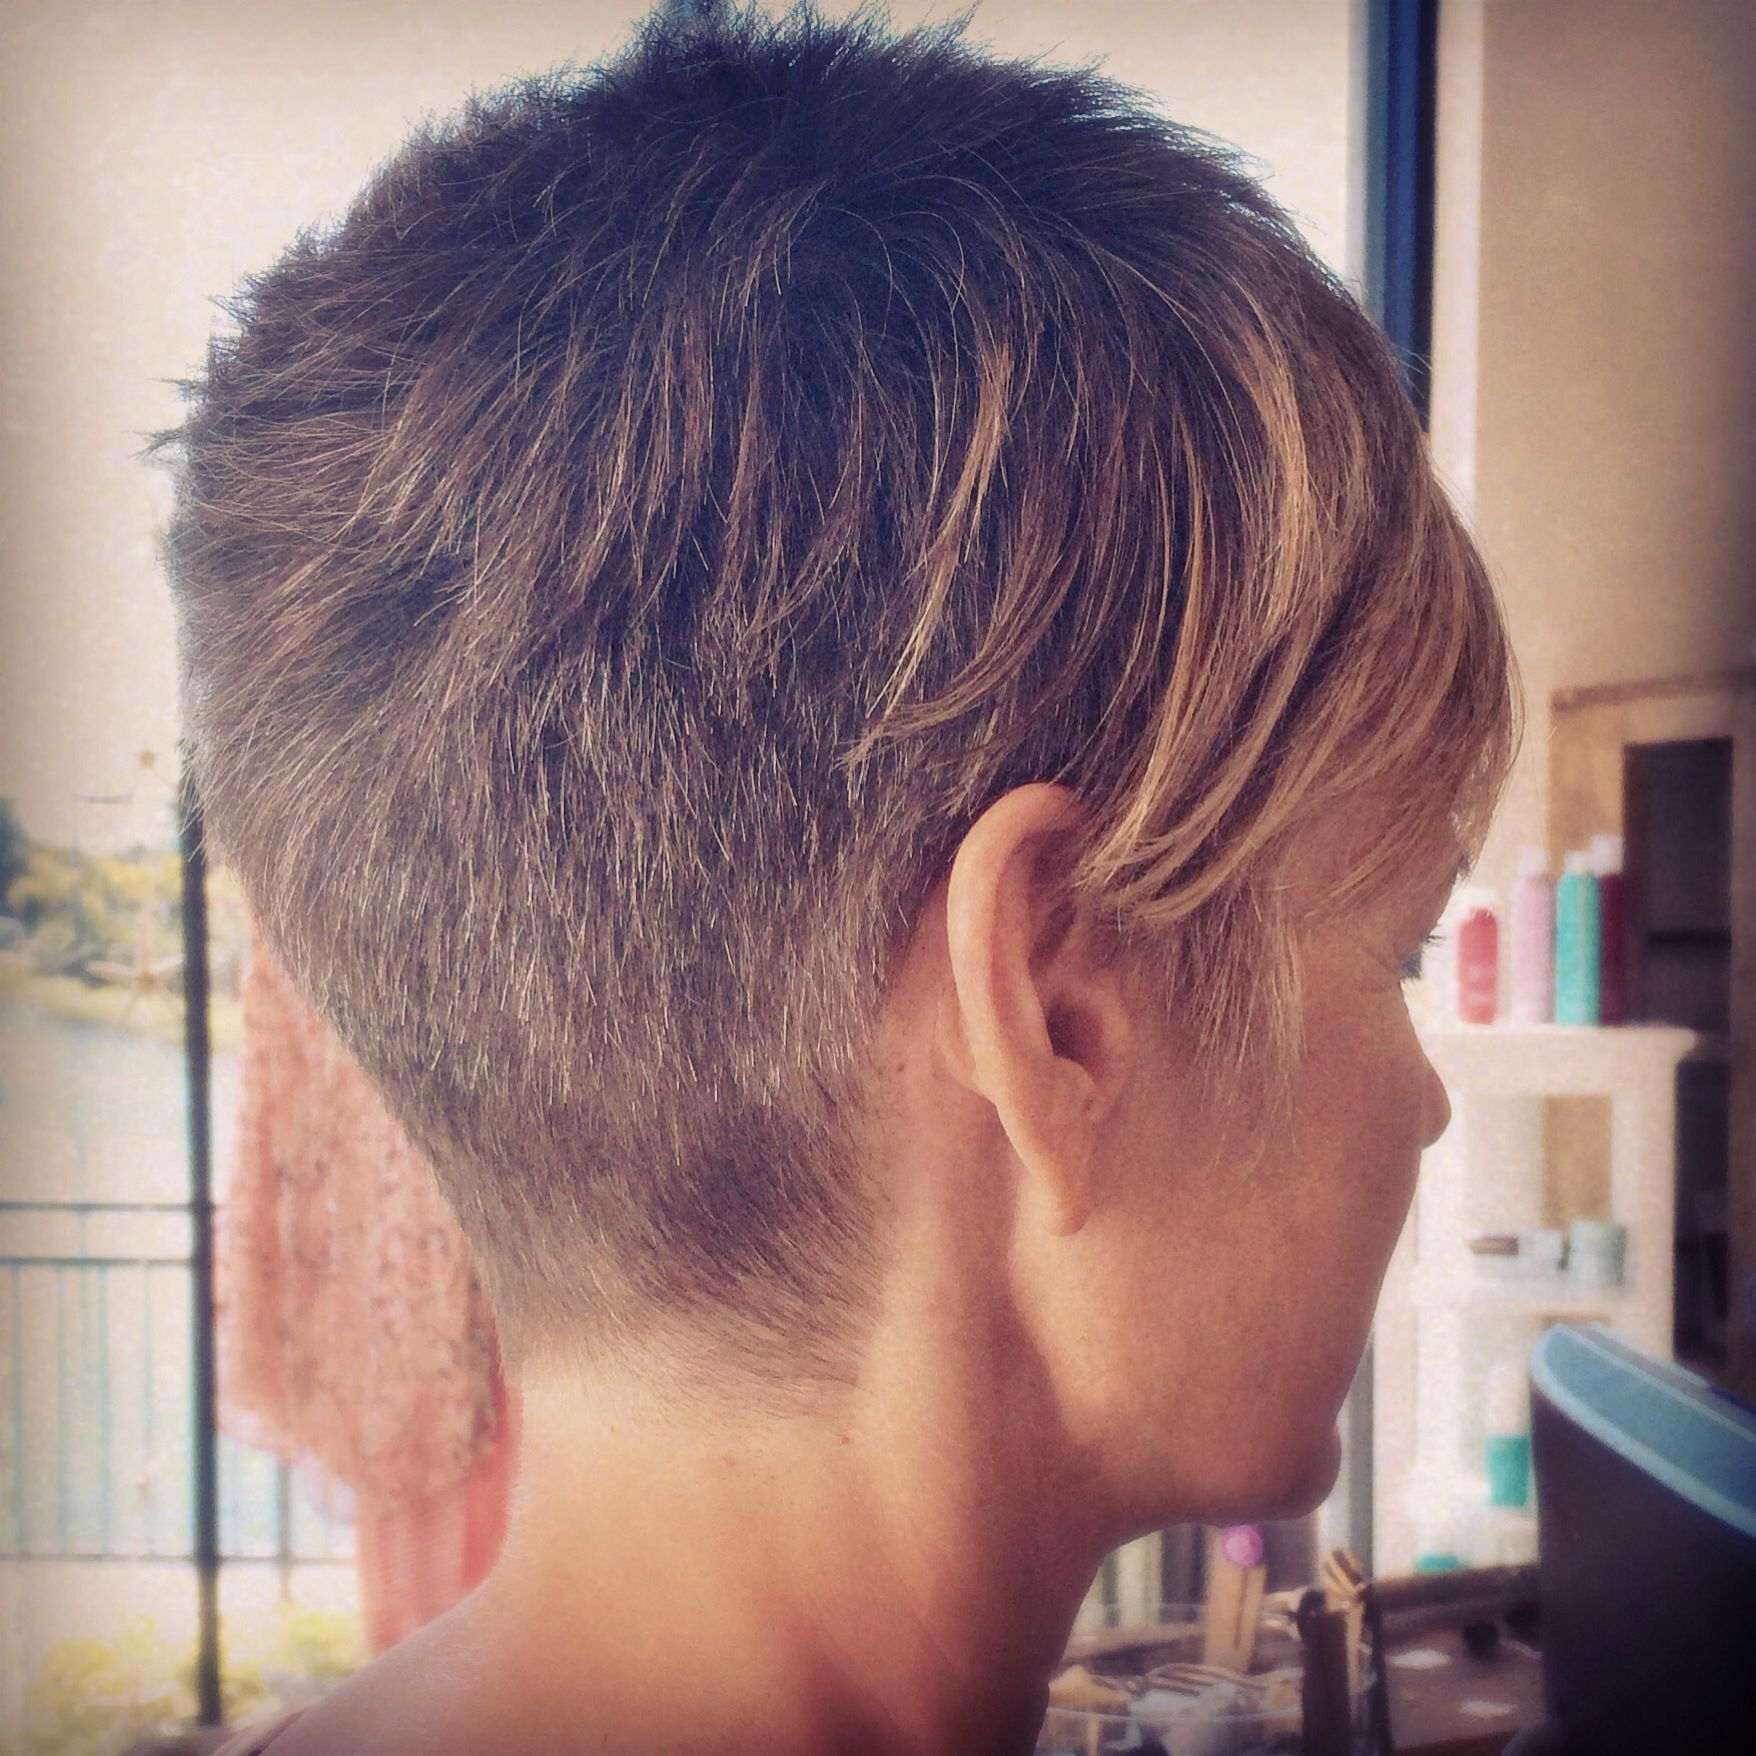 Disconnected, Pixie Cut.